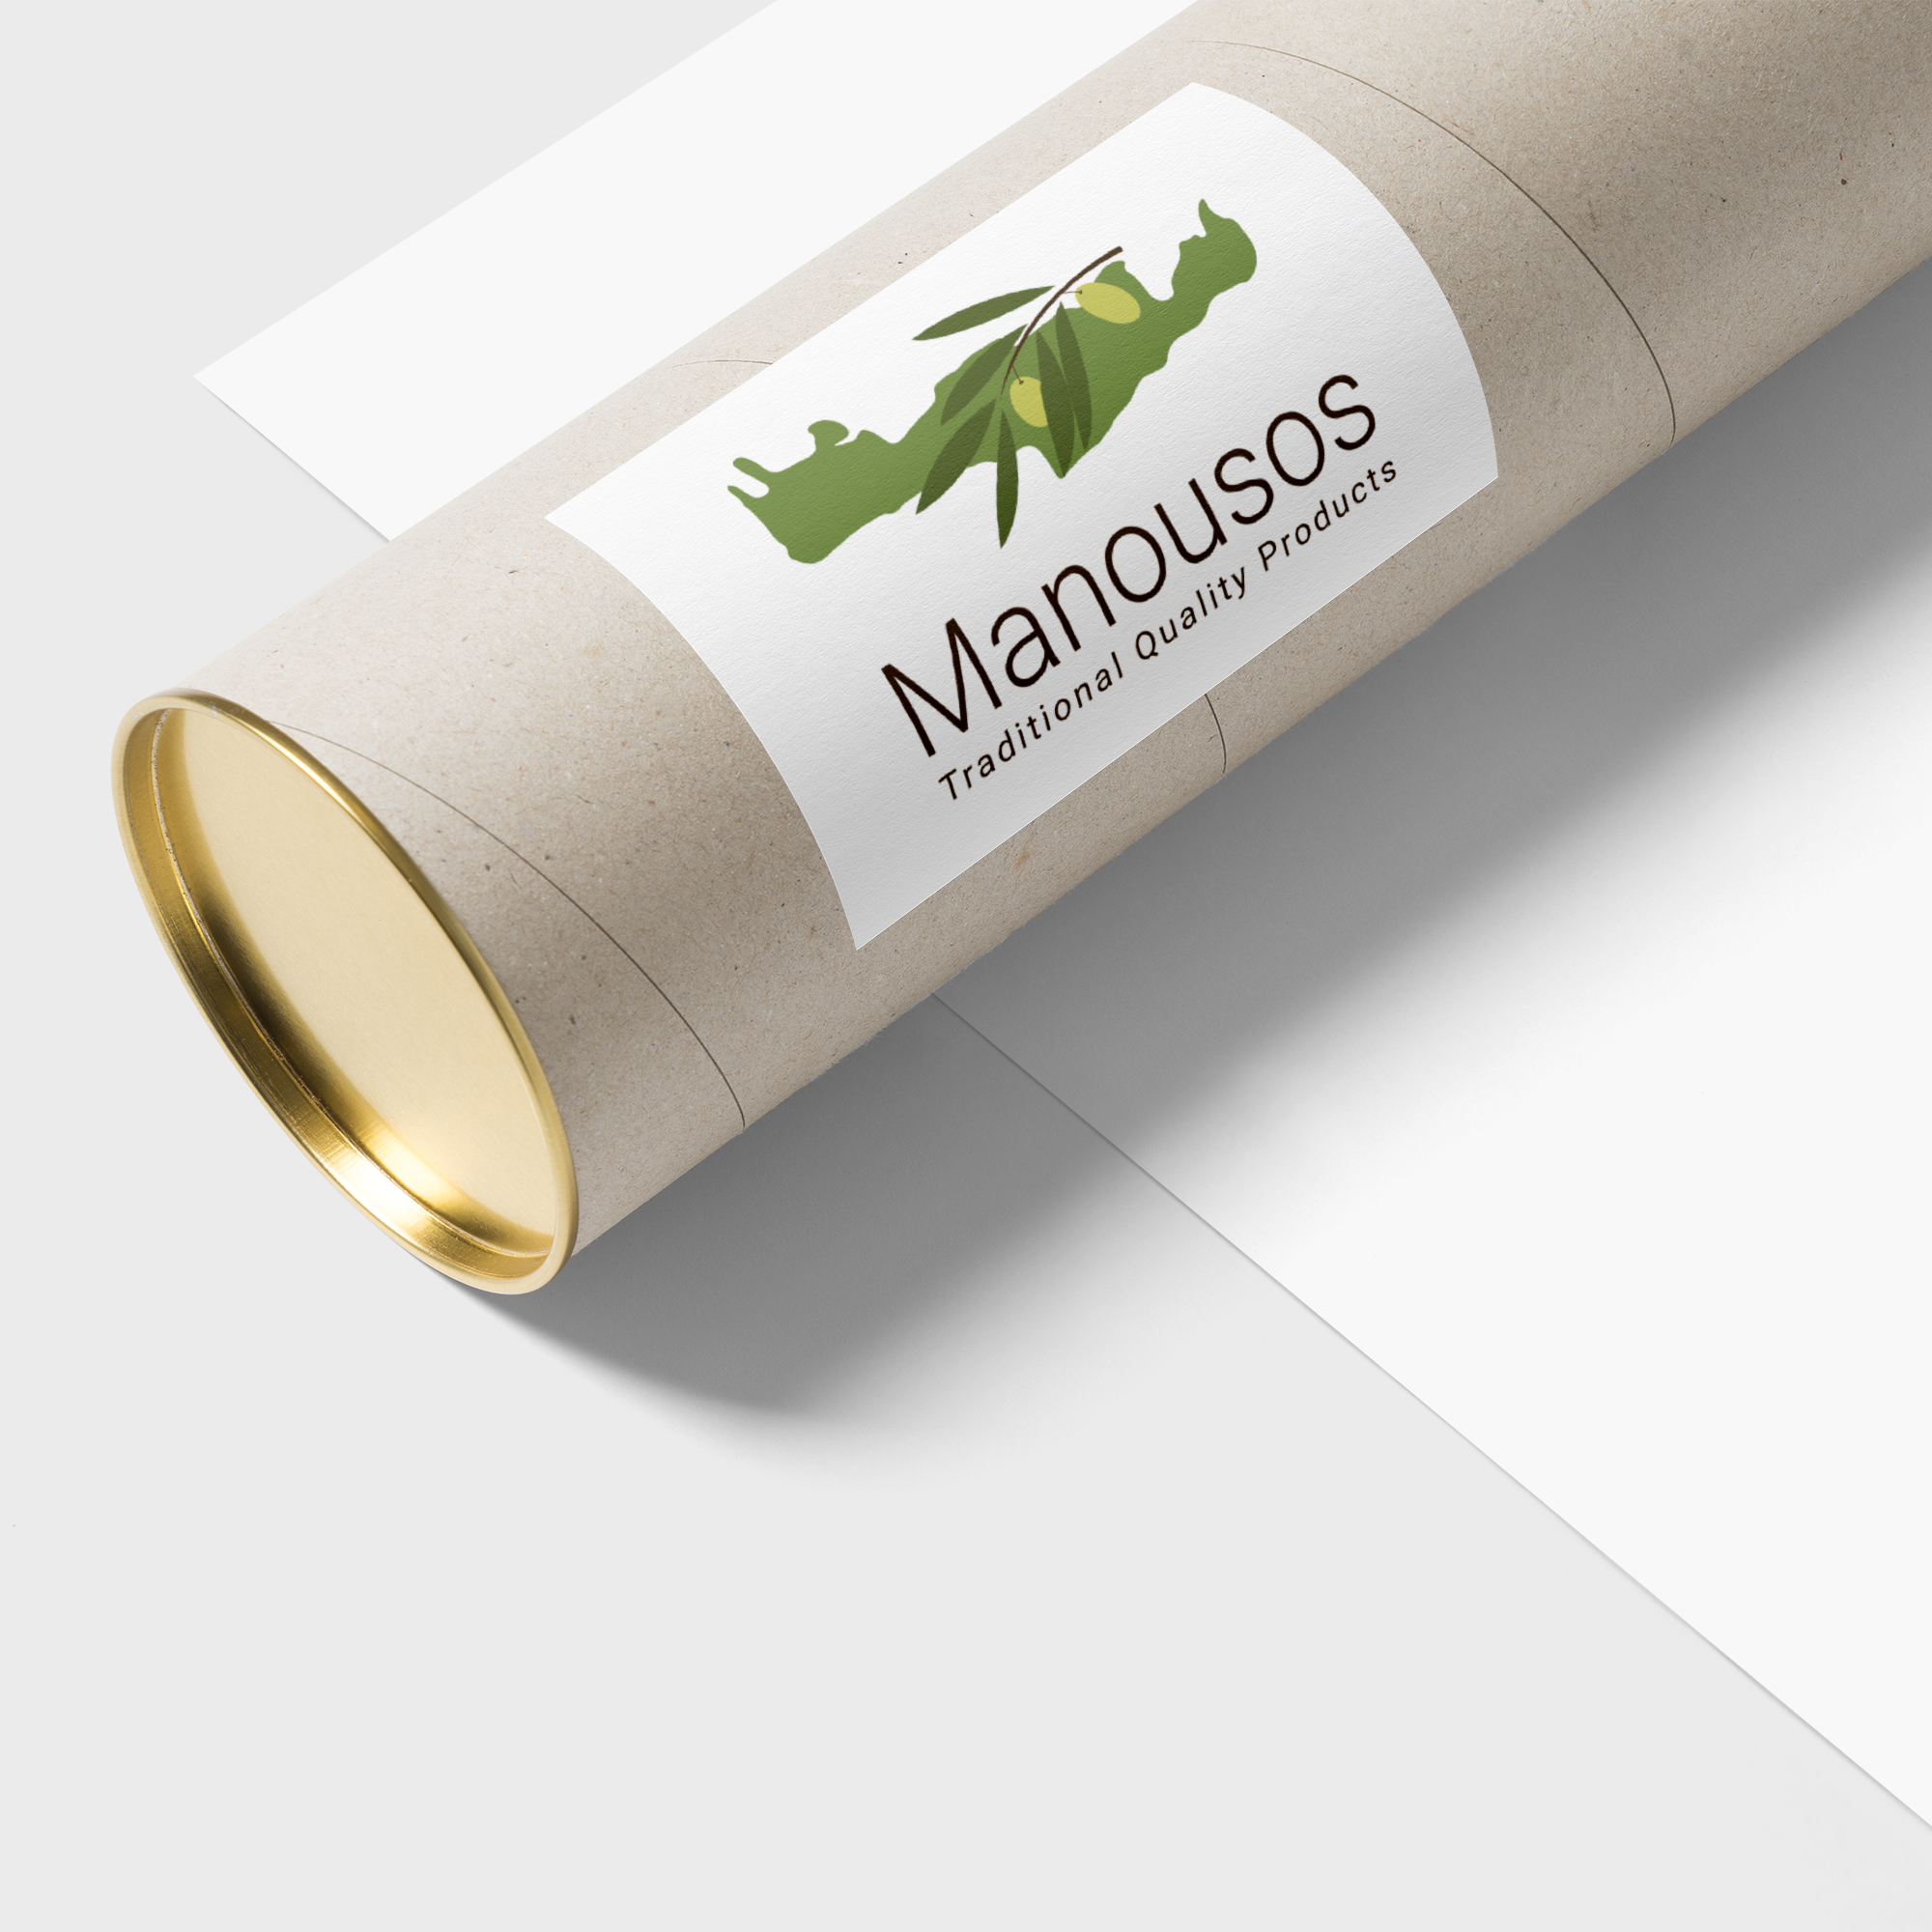 Manousos logo on a cylindrical case